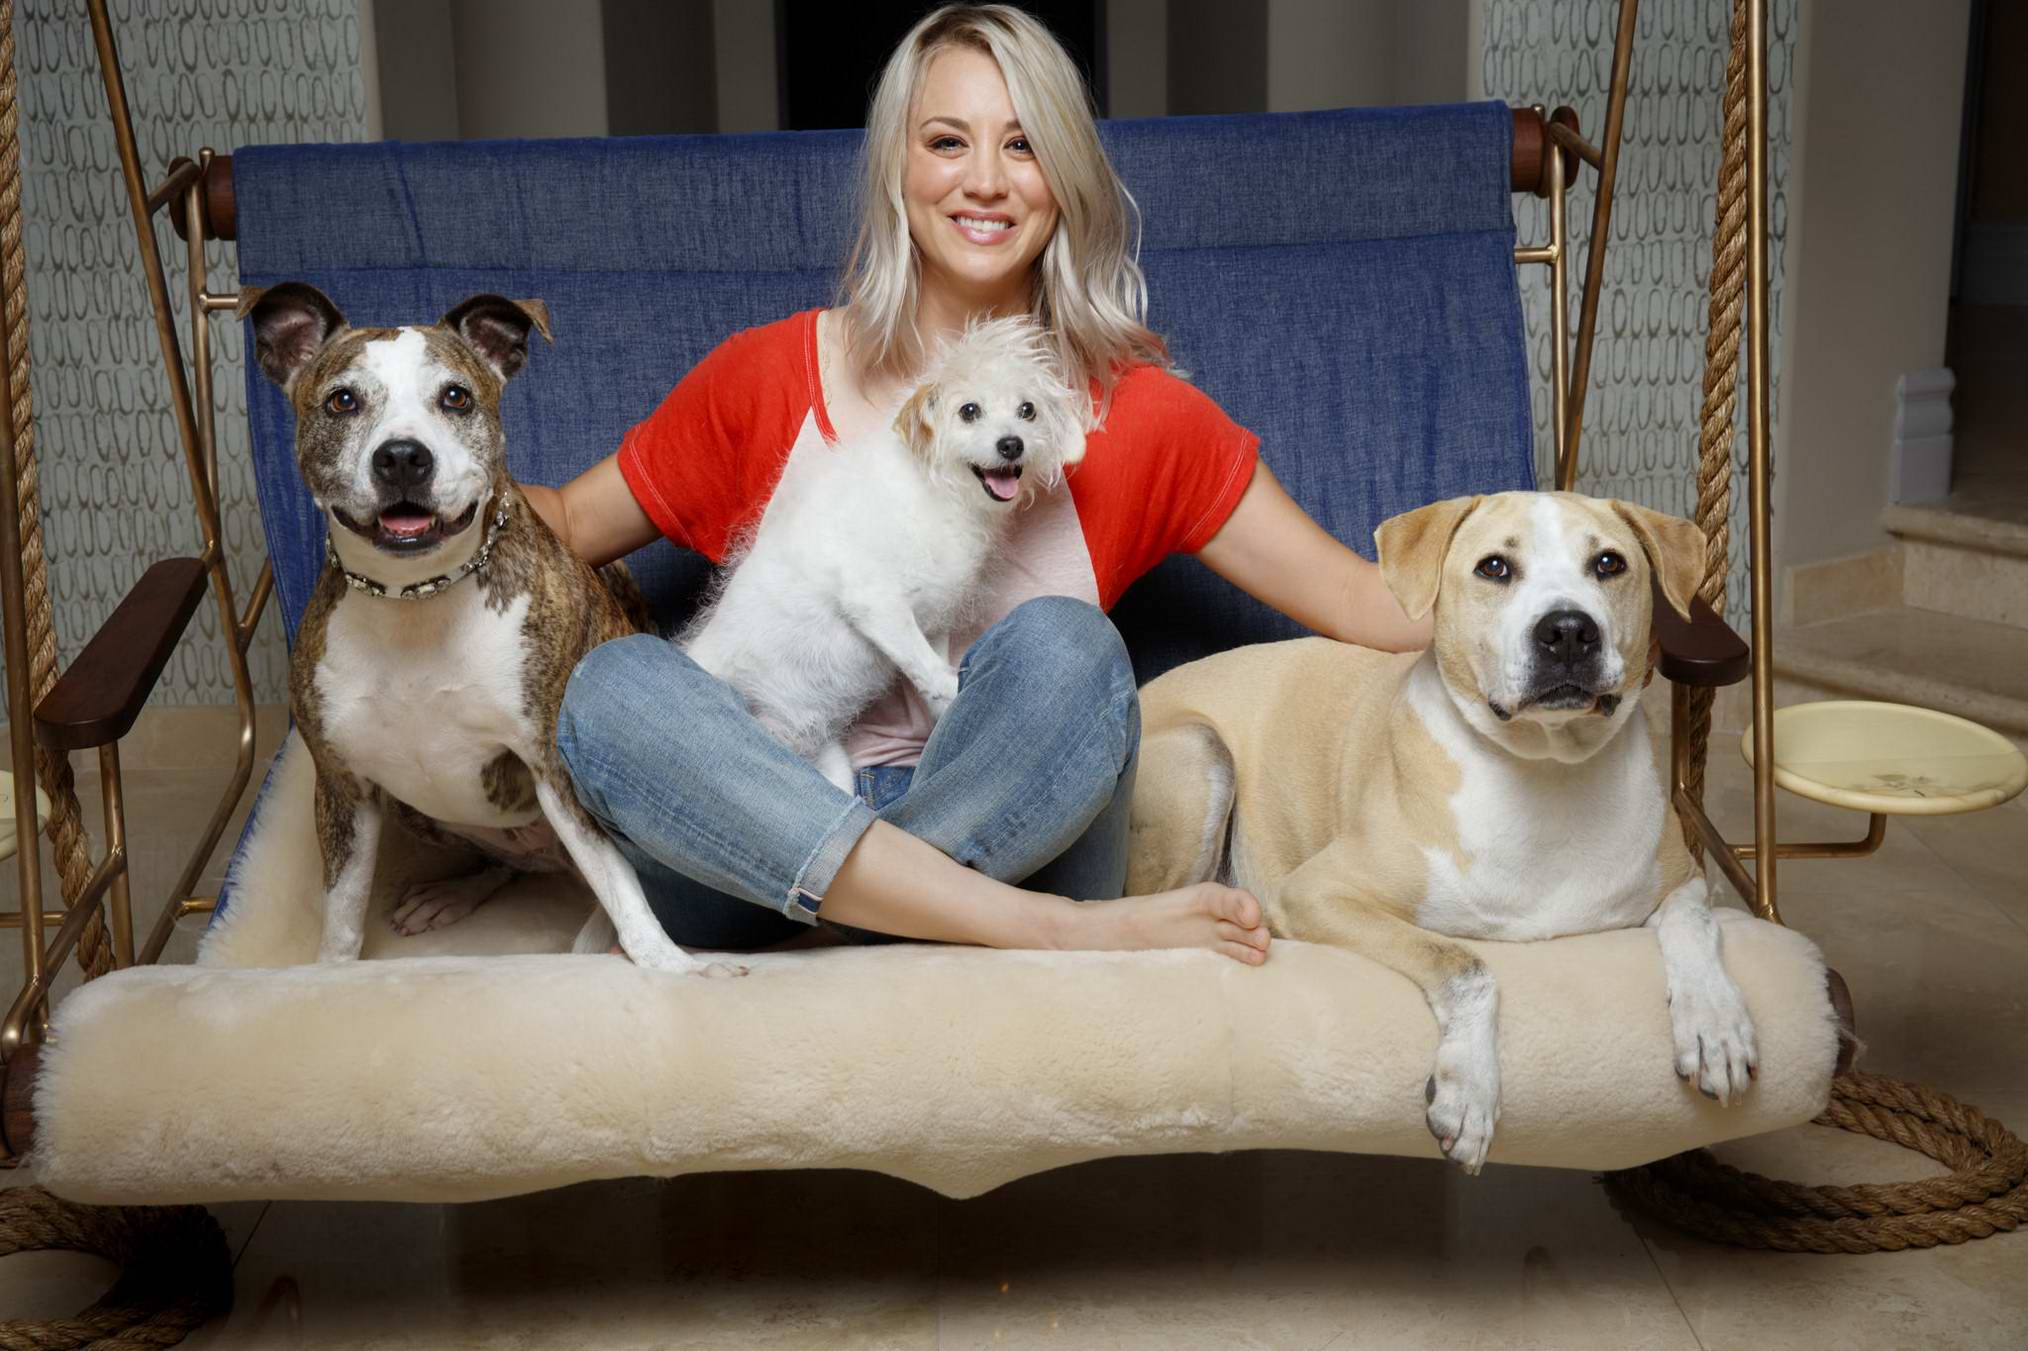 Kaley Cuoco featured in Los Angeles Times